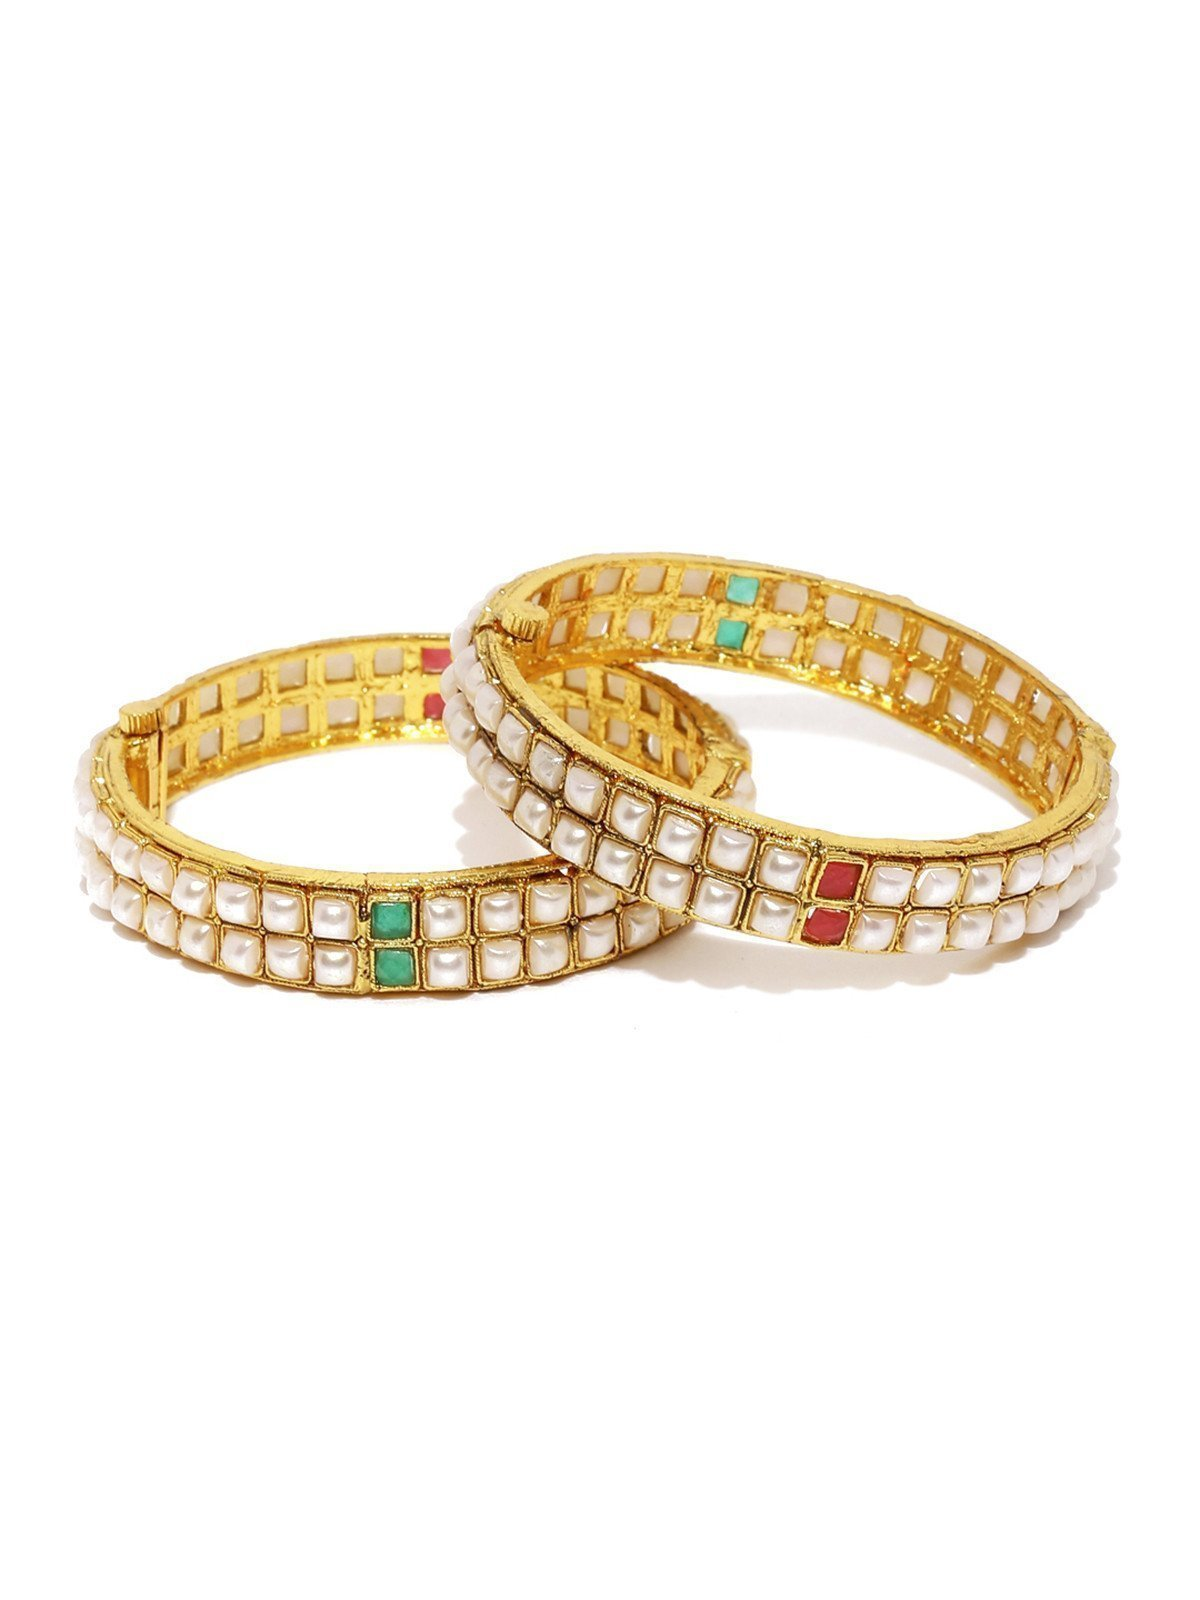 Set Of 2 Mesmerising Openable Bangles